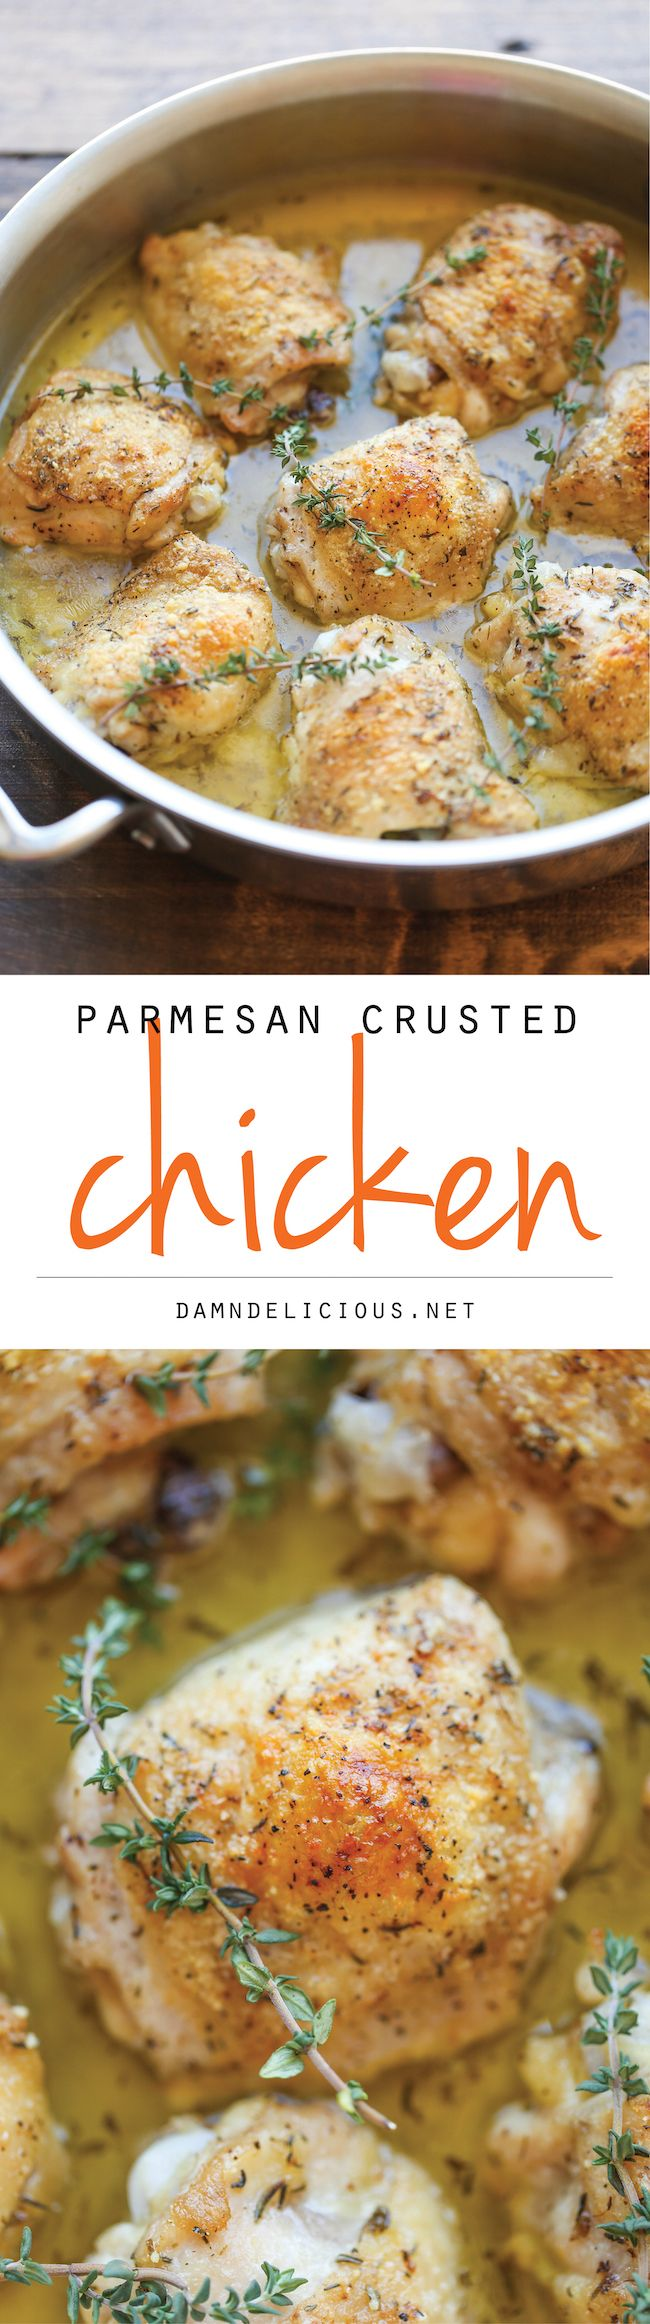 Parmesan Crusted Chicken - Crisp-tender chicken with the most amazing Parmesan crust and a lemony-herb sauce!